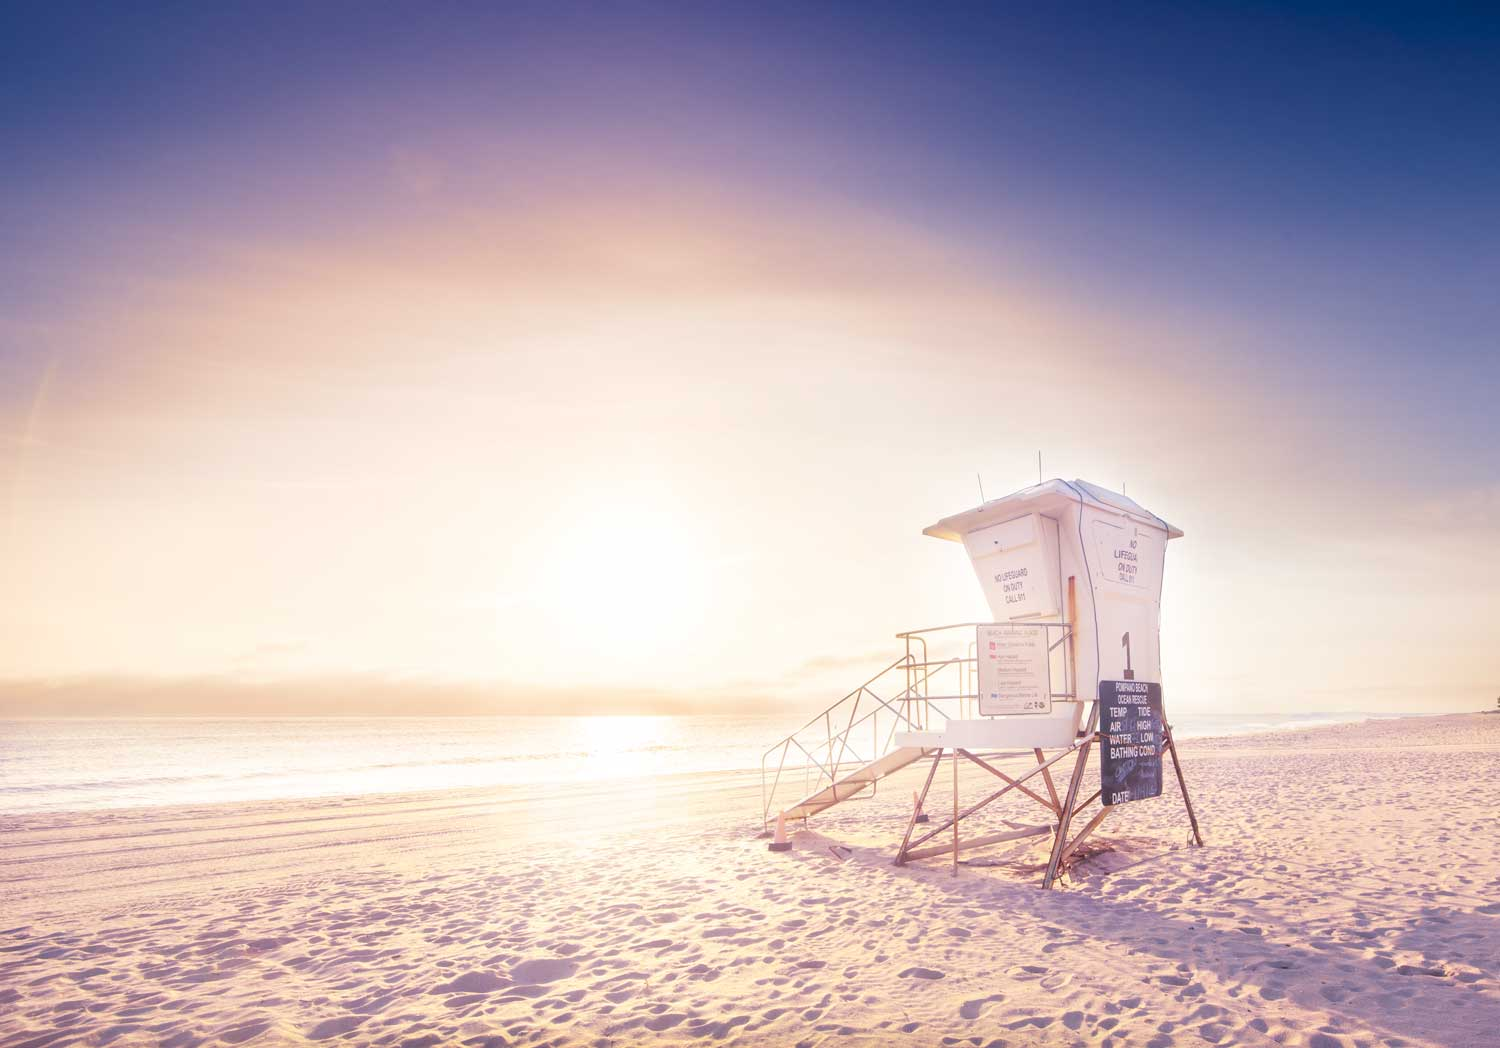 Lifeguard  - Fort Lauderdale, Florida